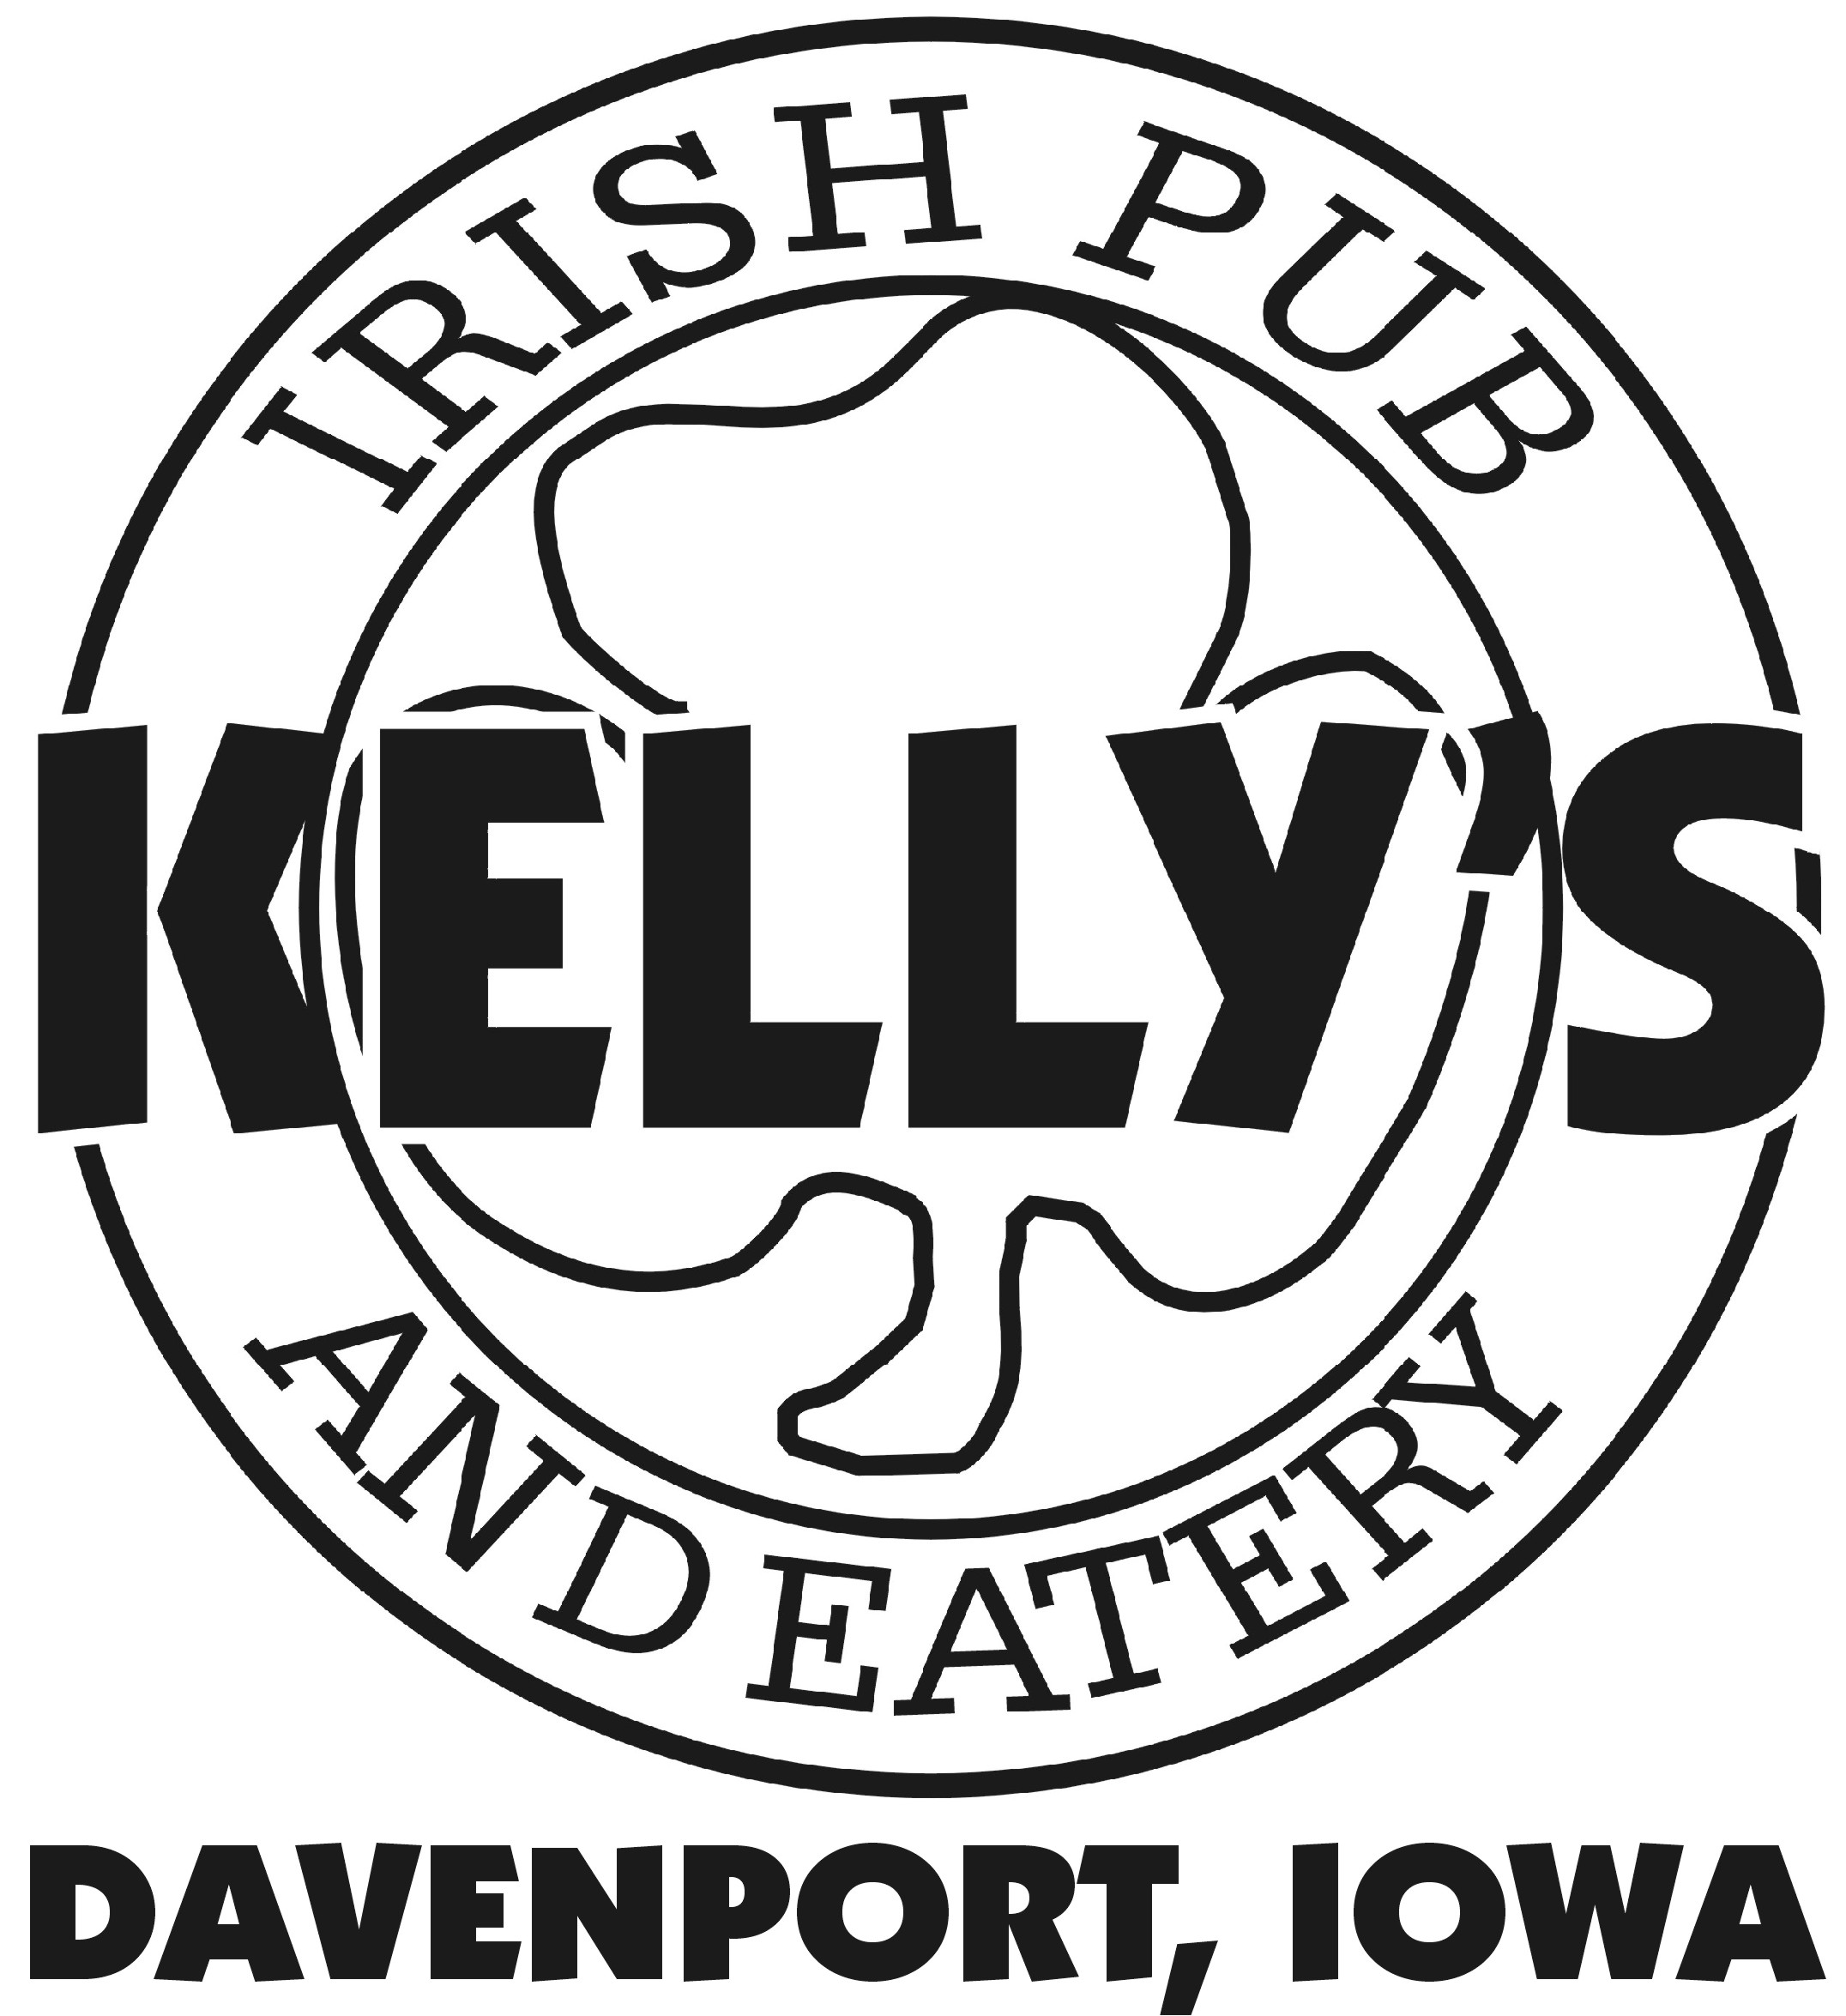 Serve all saints lutheran church page 3 visit kellys irish pub on a sunday show them your bulletin and they will graciously donate 10 of your food bill to the all saints food pantry biocorpaavc